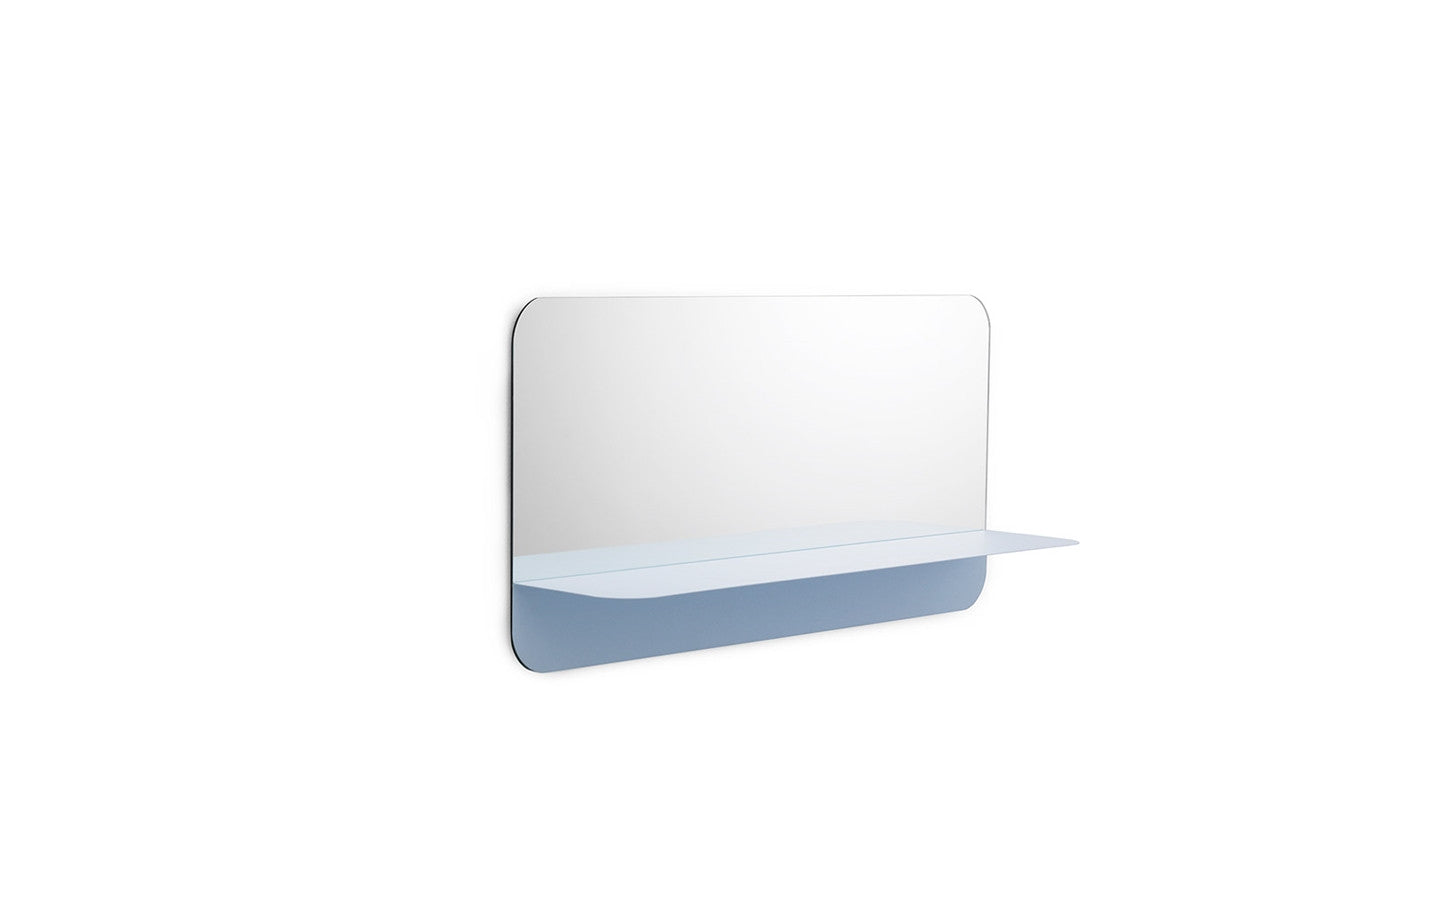 Horizon Mirror Horizontal - Light Blue fra Normann Copenhagen